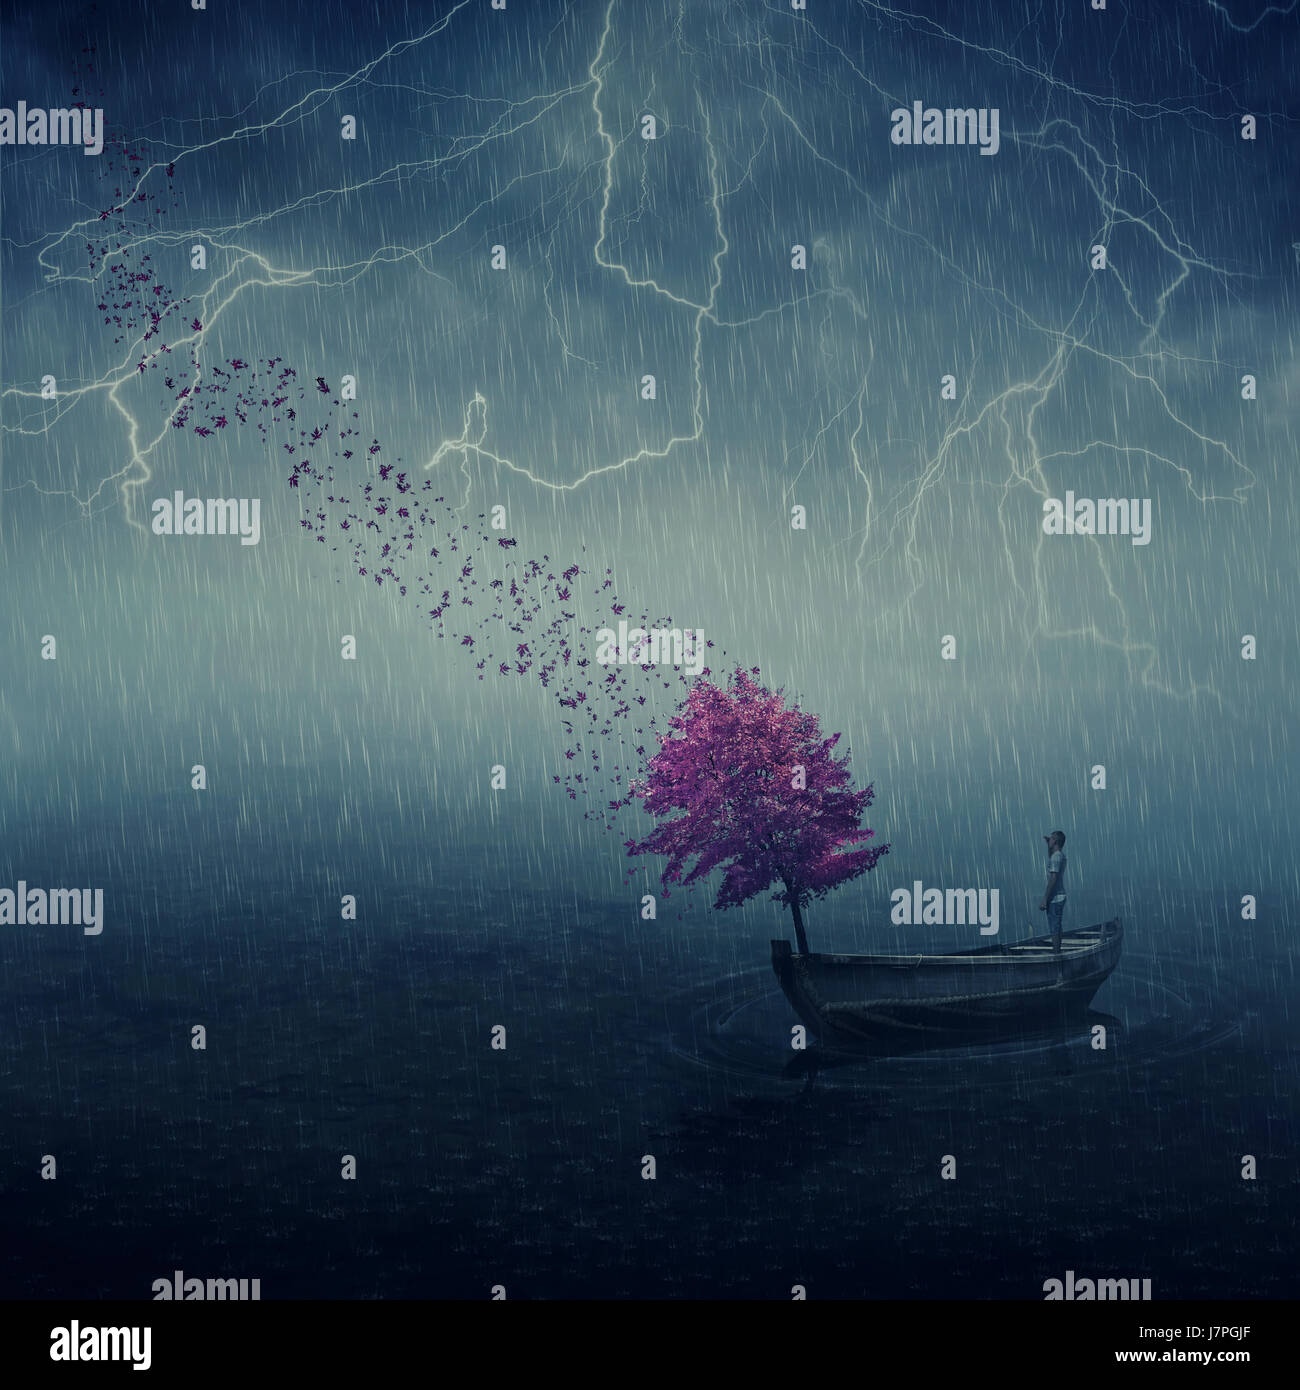 Surrealistic image as lonely boy floating in a wooden boat with a purple tree that cast its leaves in the wind. Lost in the middle of the sea, below t Stock Photo